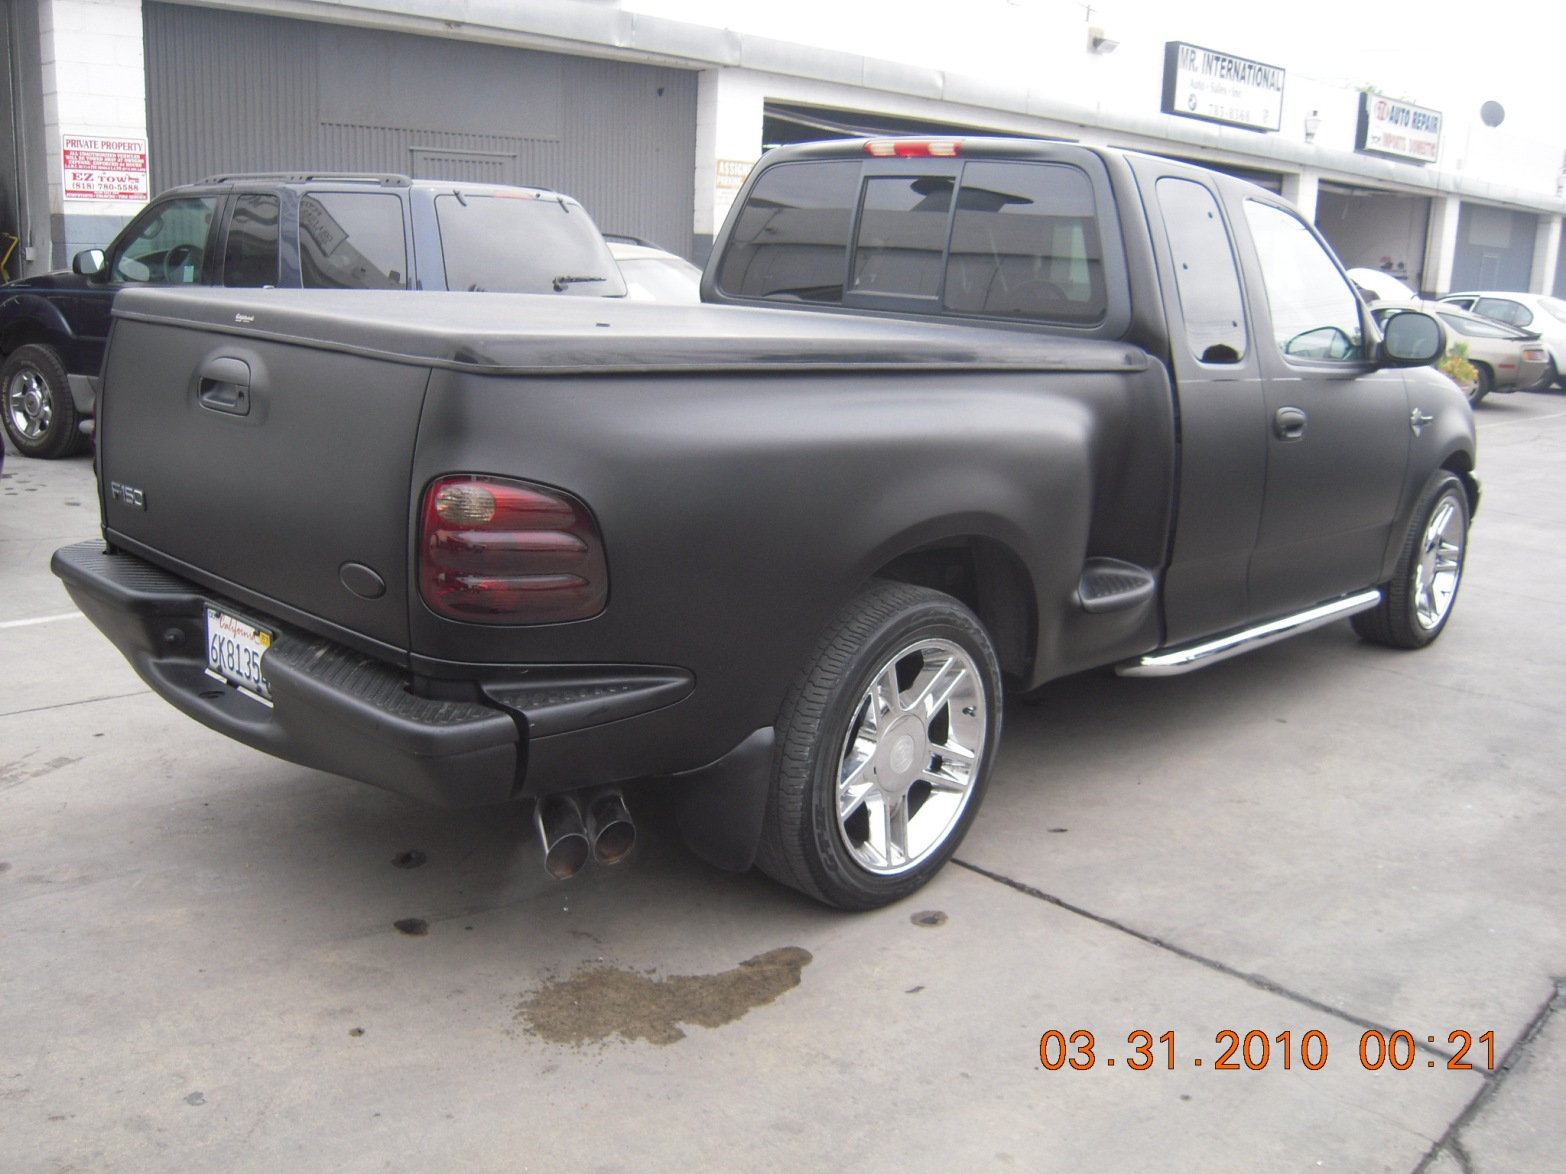 west-coast-body-and-paint-black-ford-f150-11